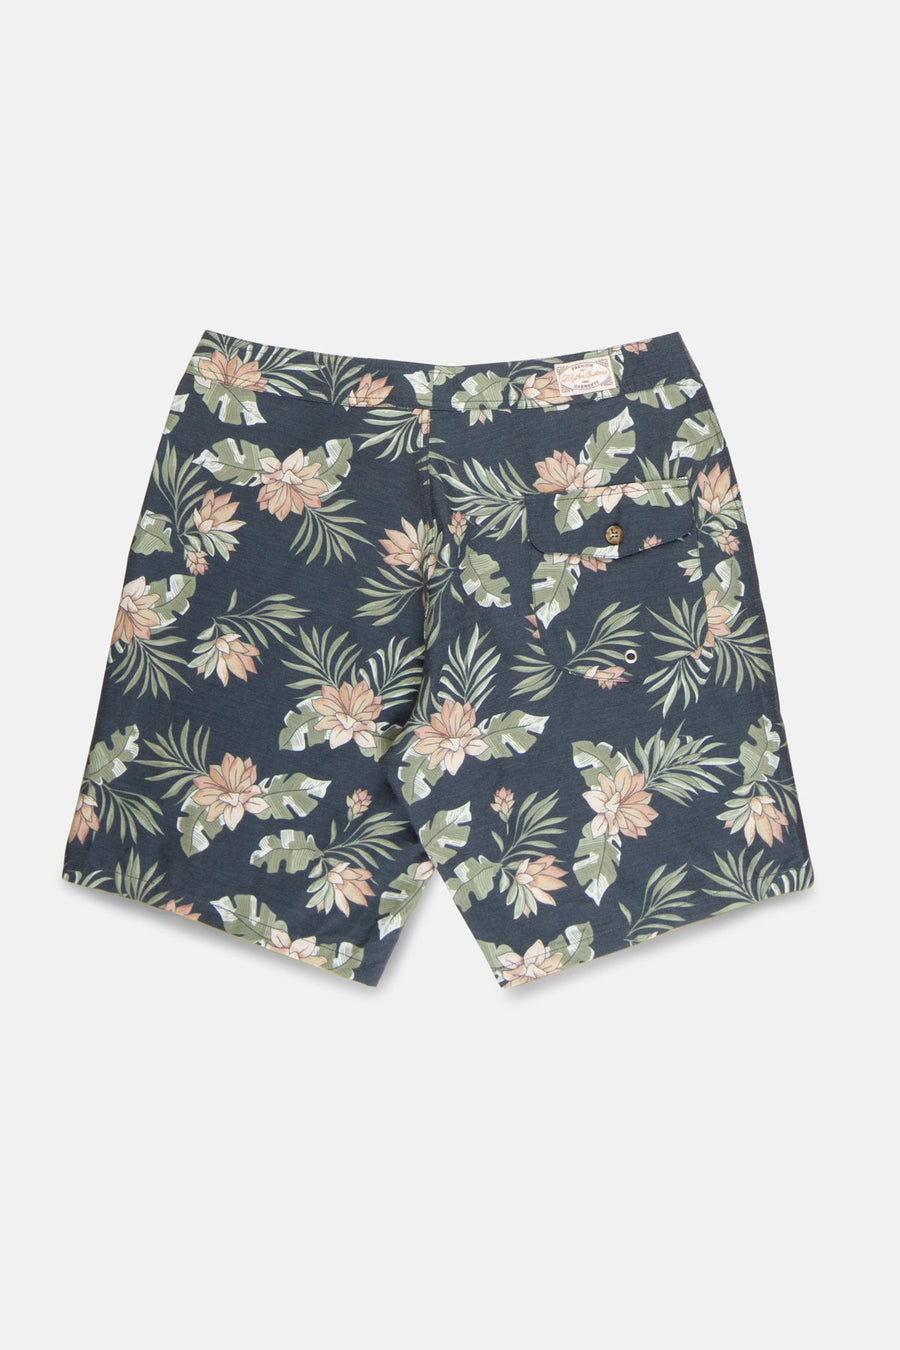 RHYTHM Vintage Palm Trunk Boardshorts Vintage Navy